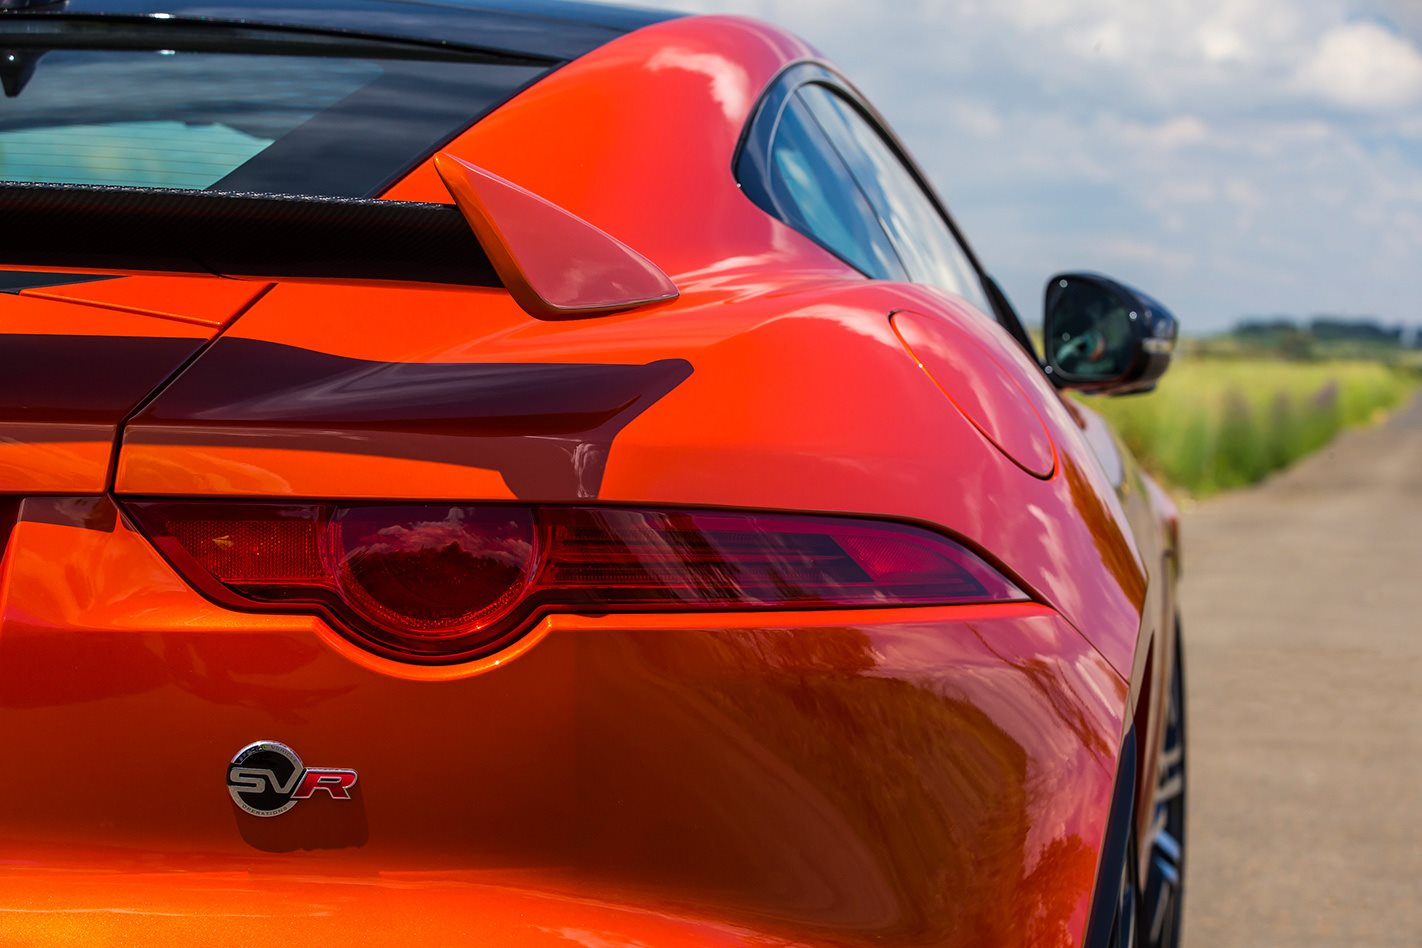 2017 Jaguar F-Type SVR close up